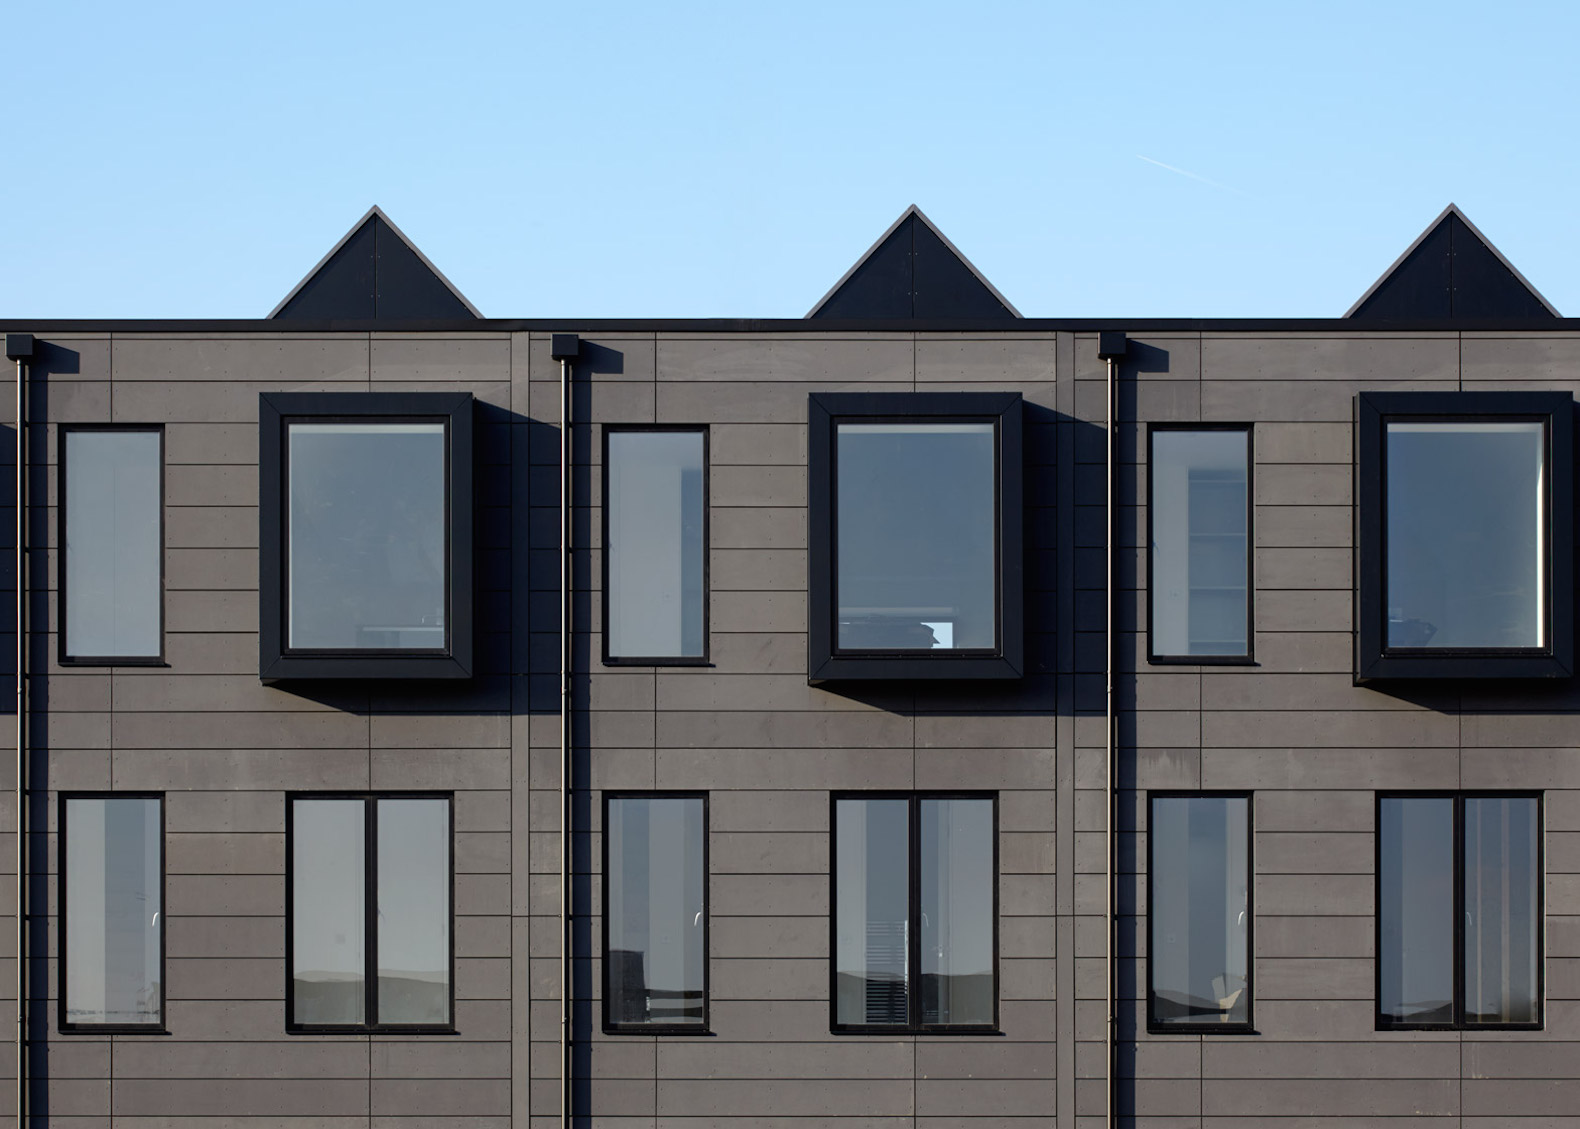 Modular Homes By Urban Splash And Shedkm, Prefab Housing Project  Manchester, Prefab Housing Irwell